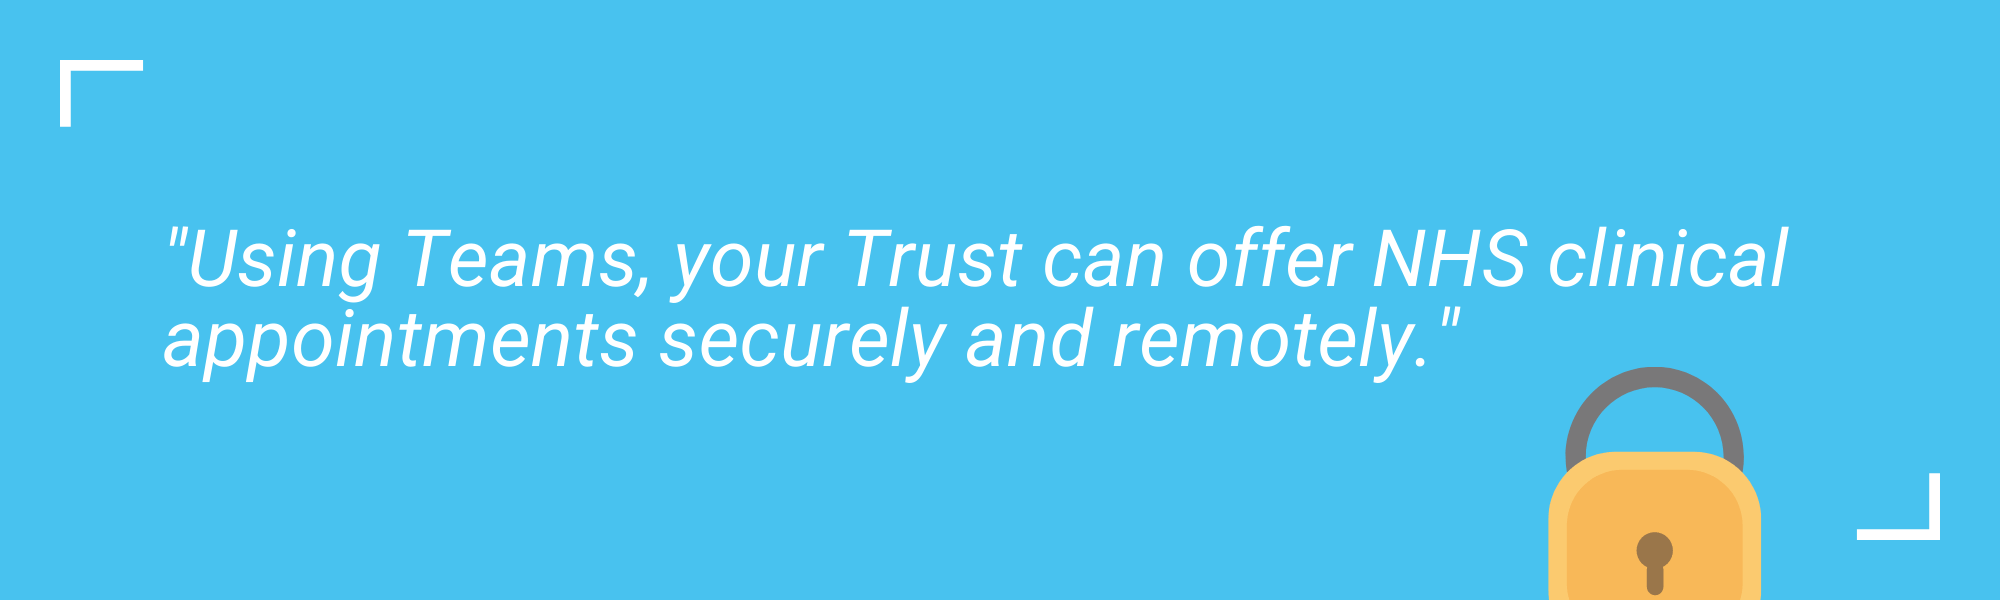 A quote saying your NHS needs Teams and can offer NHS clinical appointments securely and remotely